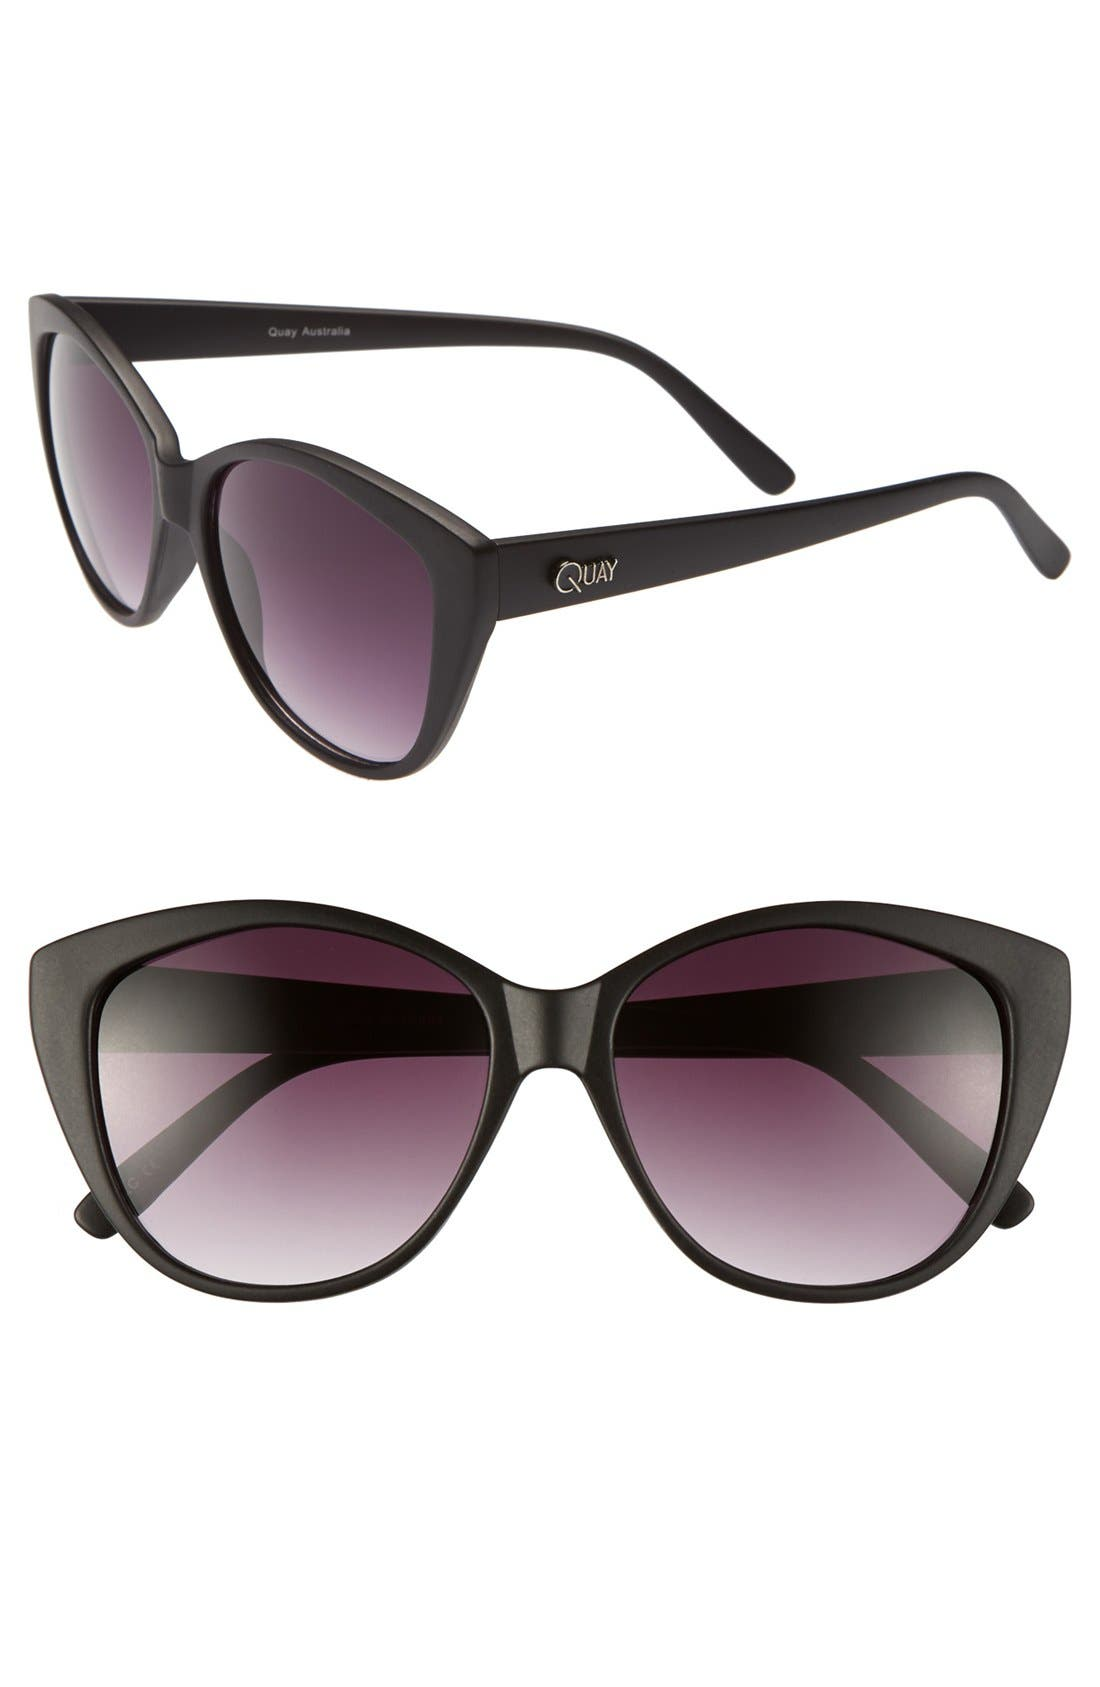 Main Image - Quay Cat's Eye Sunglasses